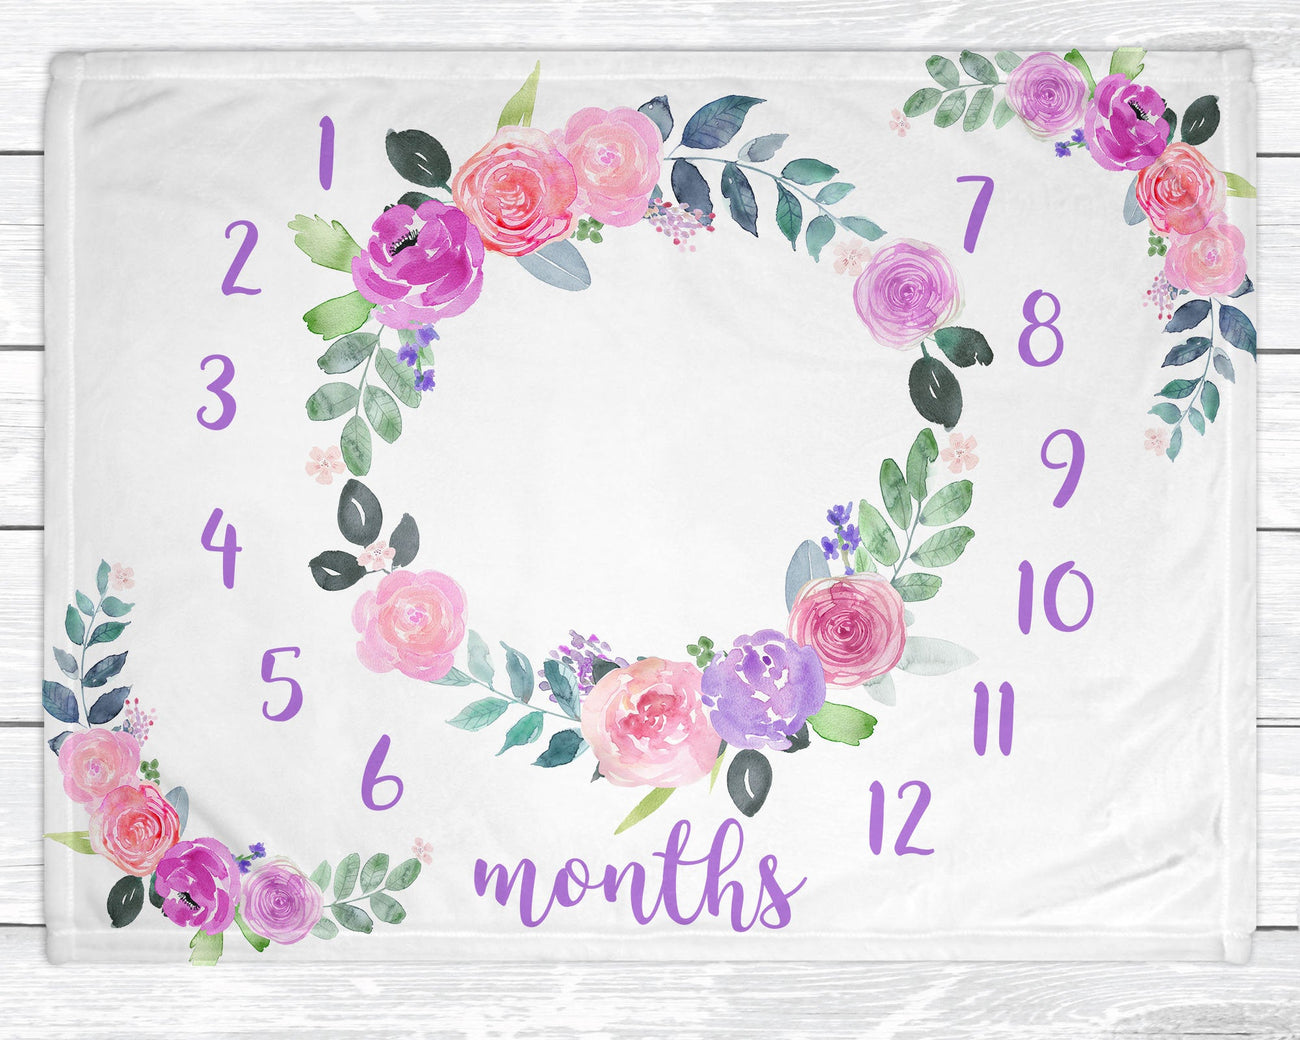 Baby Milestone Blanket - Floral Baby Girl Monthly Minky Blanket - New Mom Baby Shower Gift - Monthly Baby Blanket